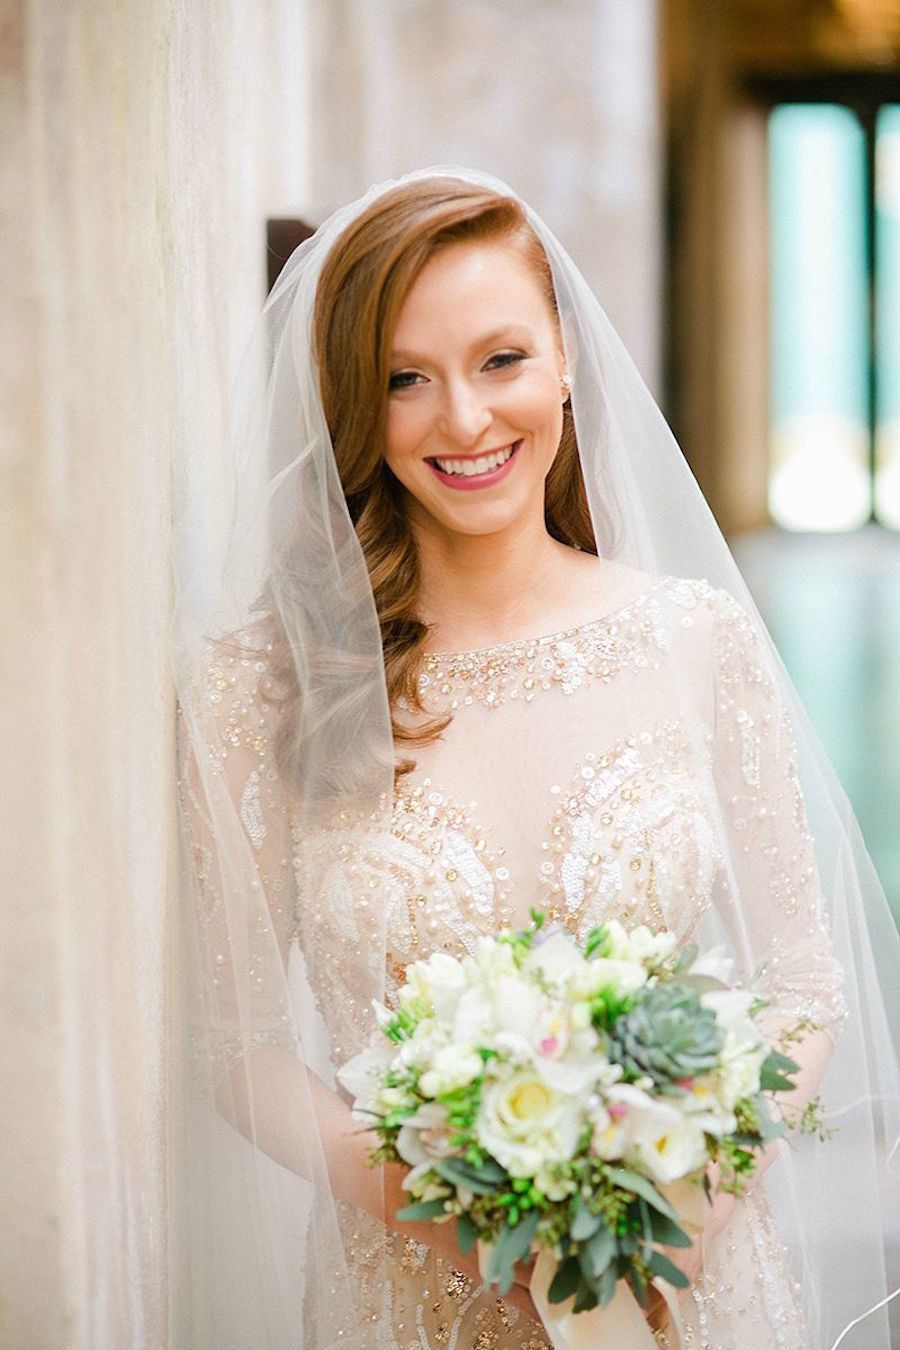 A Gold Beaded Gown Set The Stage For A Glam Puerto Rican Wedding In 2020 Wedding Dress Inspiration Beaded Gown Beaded Wedding Gowns